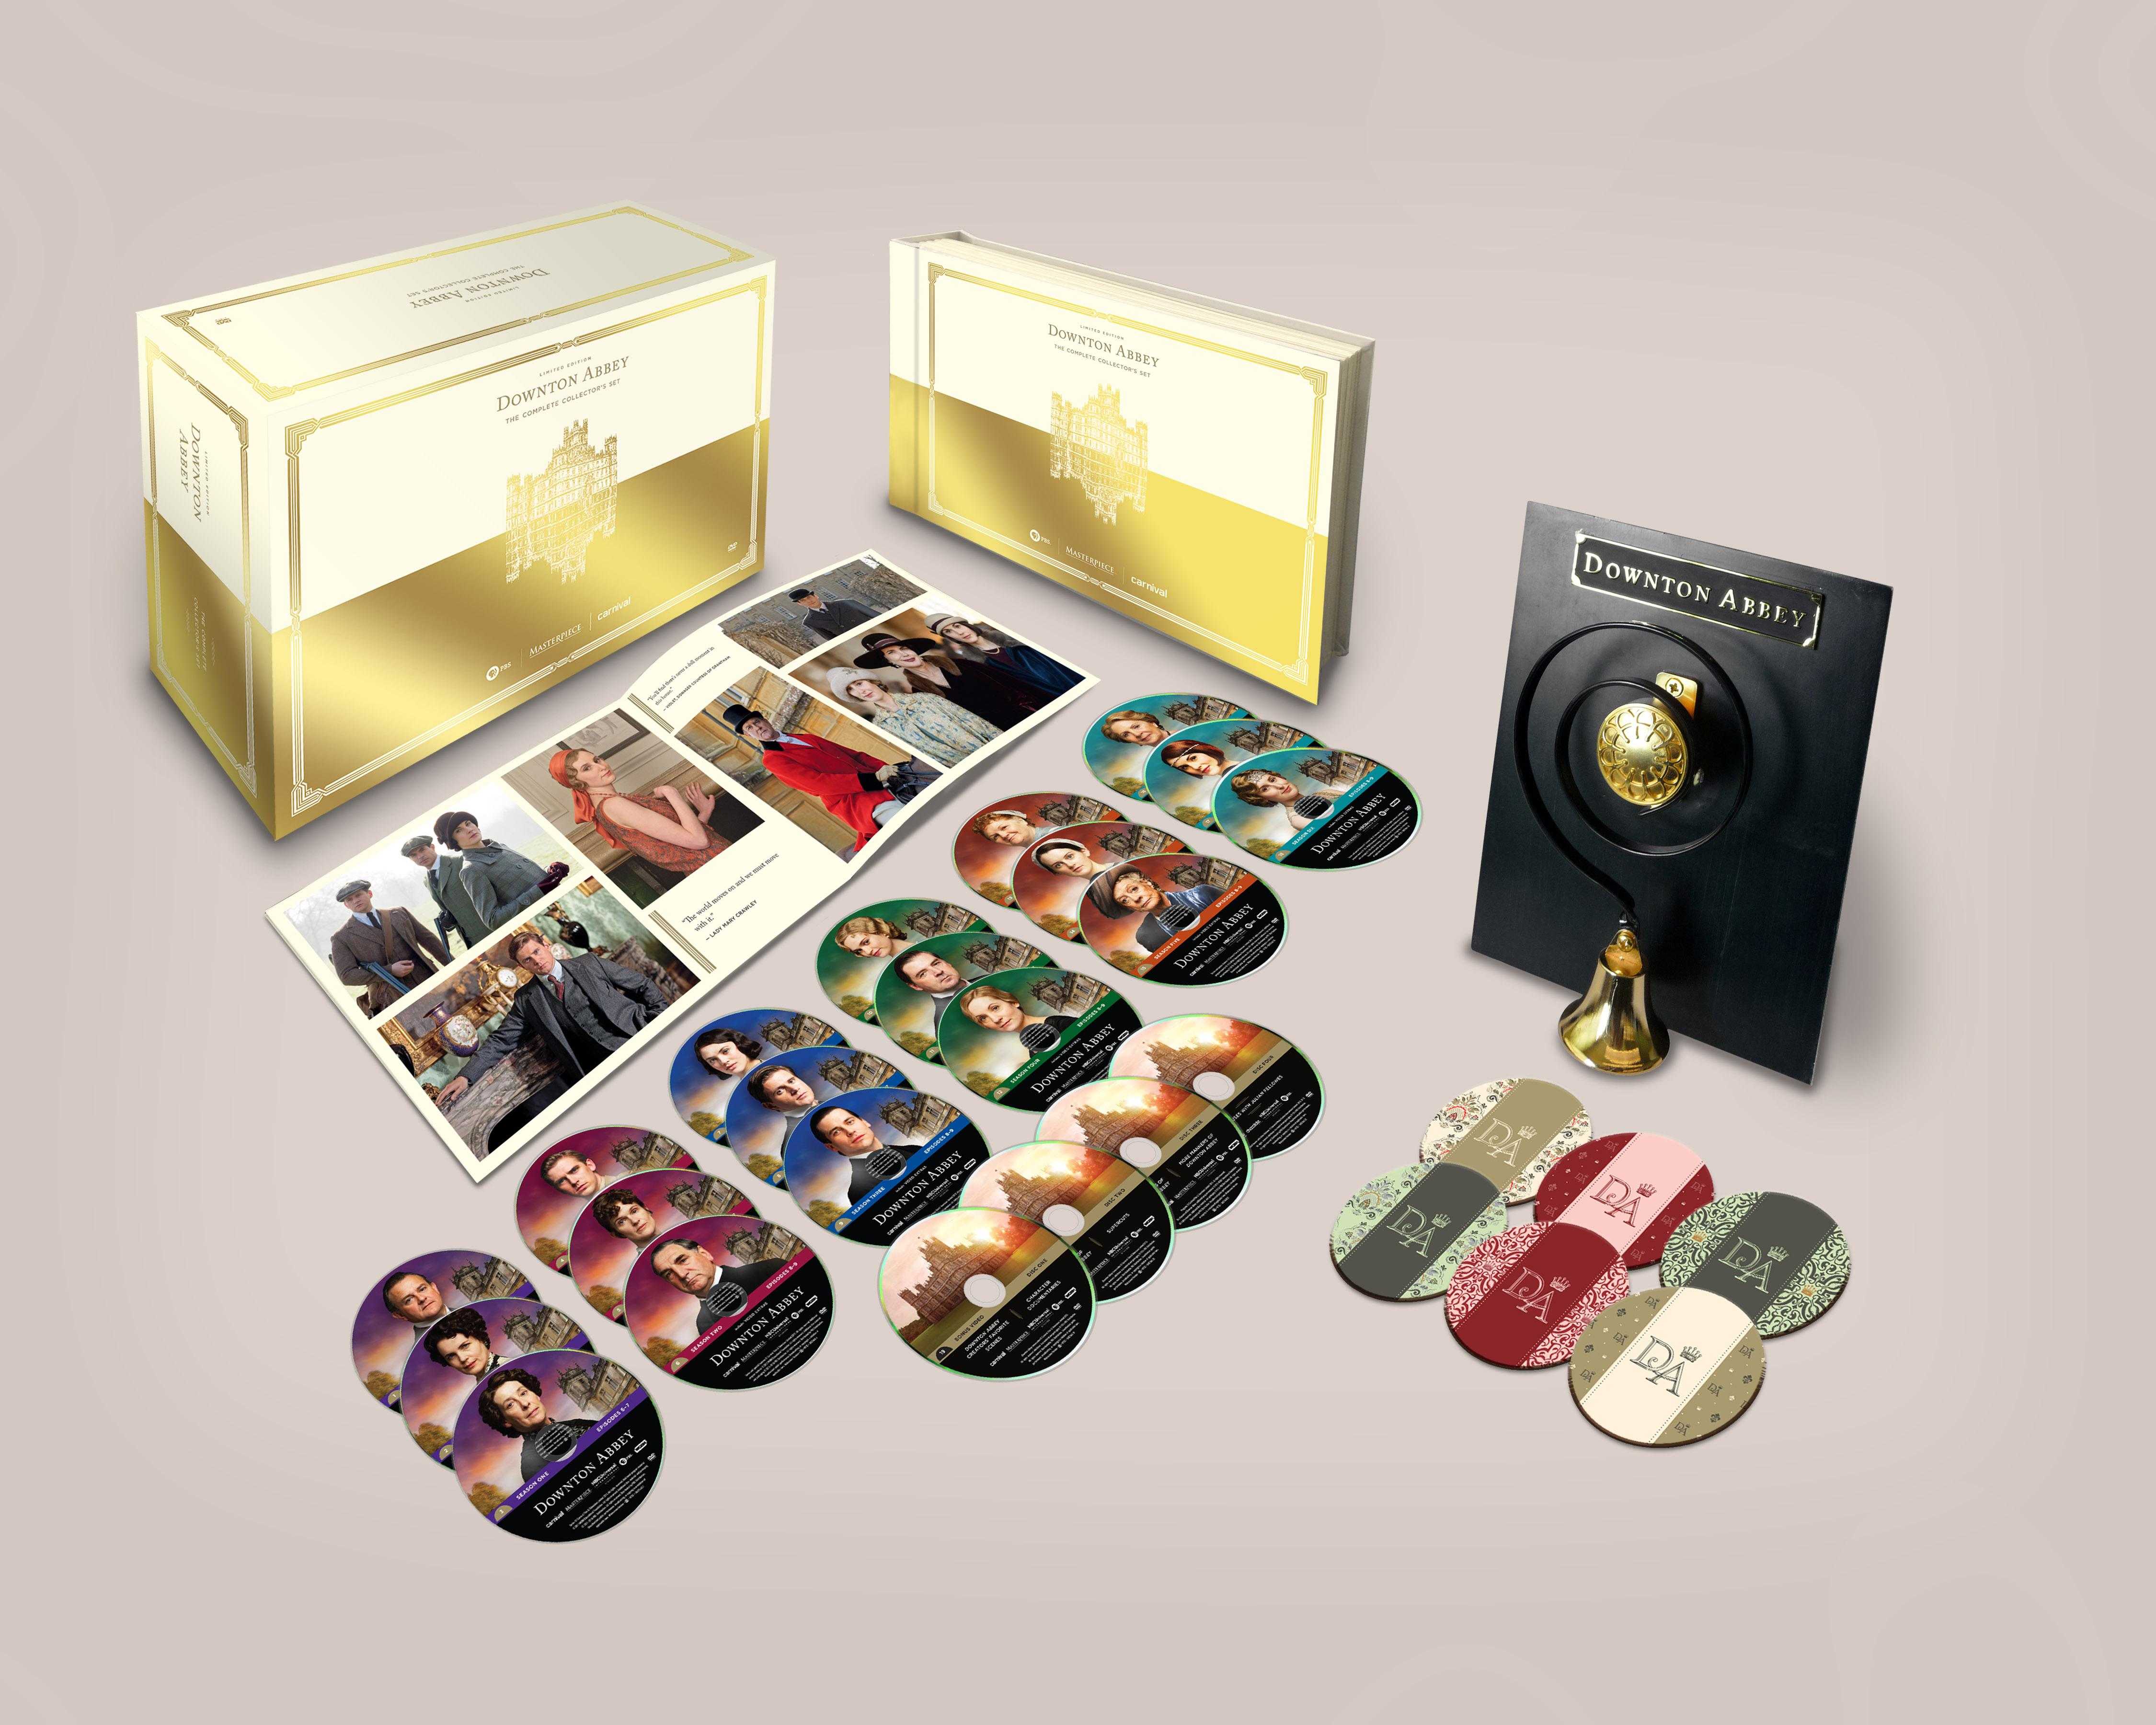 Amazon.com: Downton Abbey: Complete Limited Edition Collector's Set